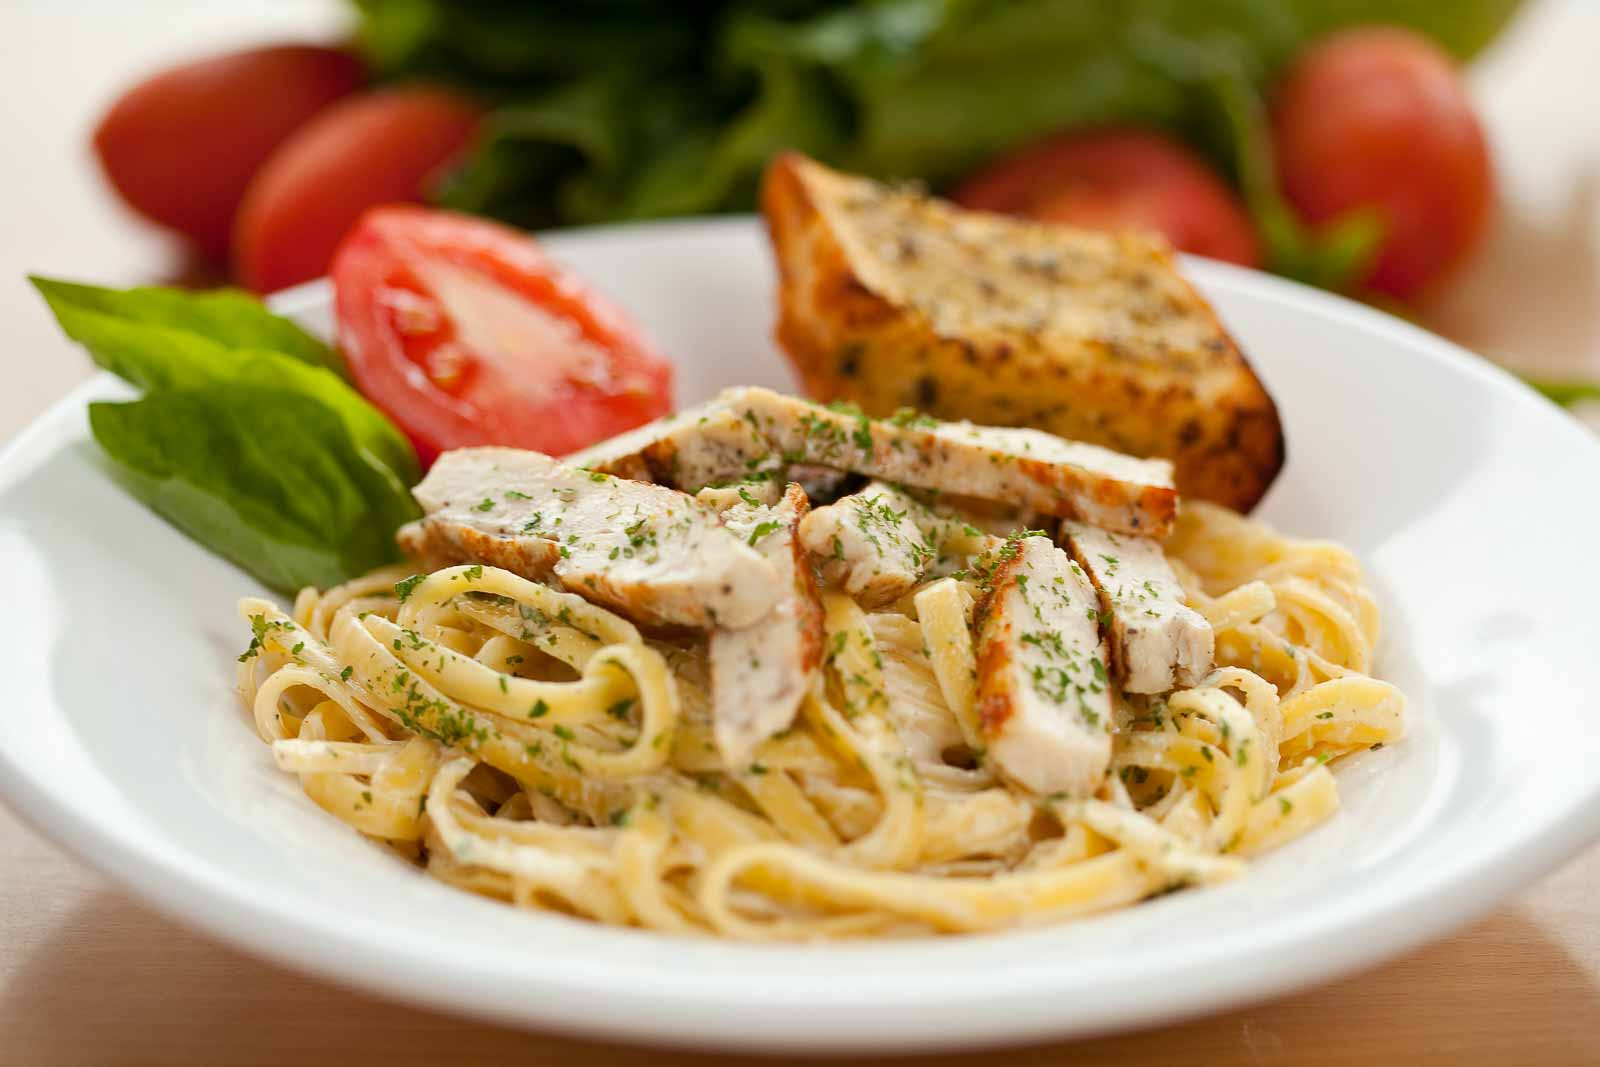 Grilled Chicken Spaghetti Pasta With Herbs